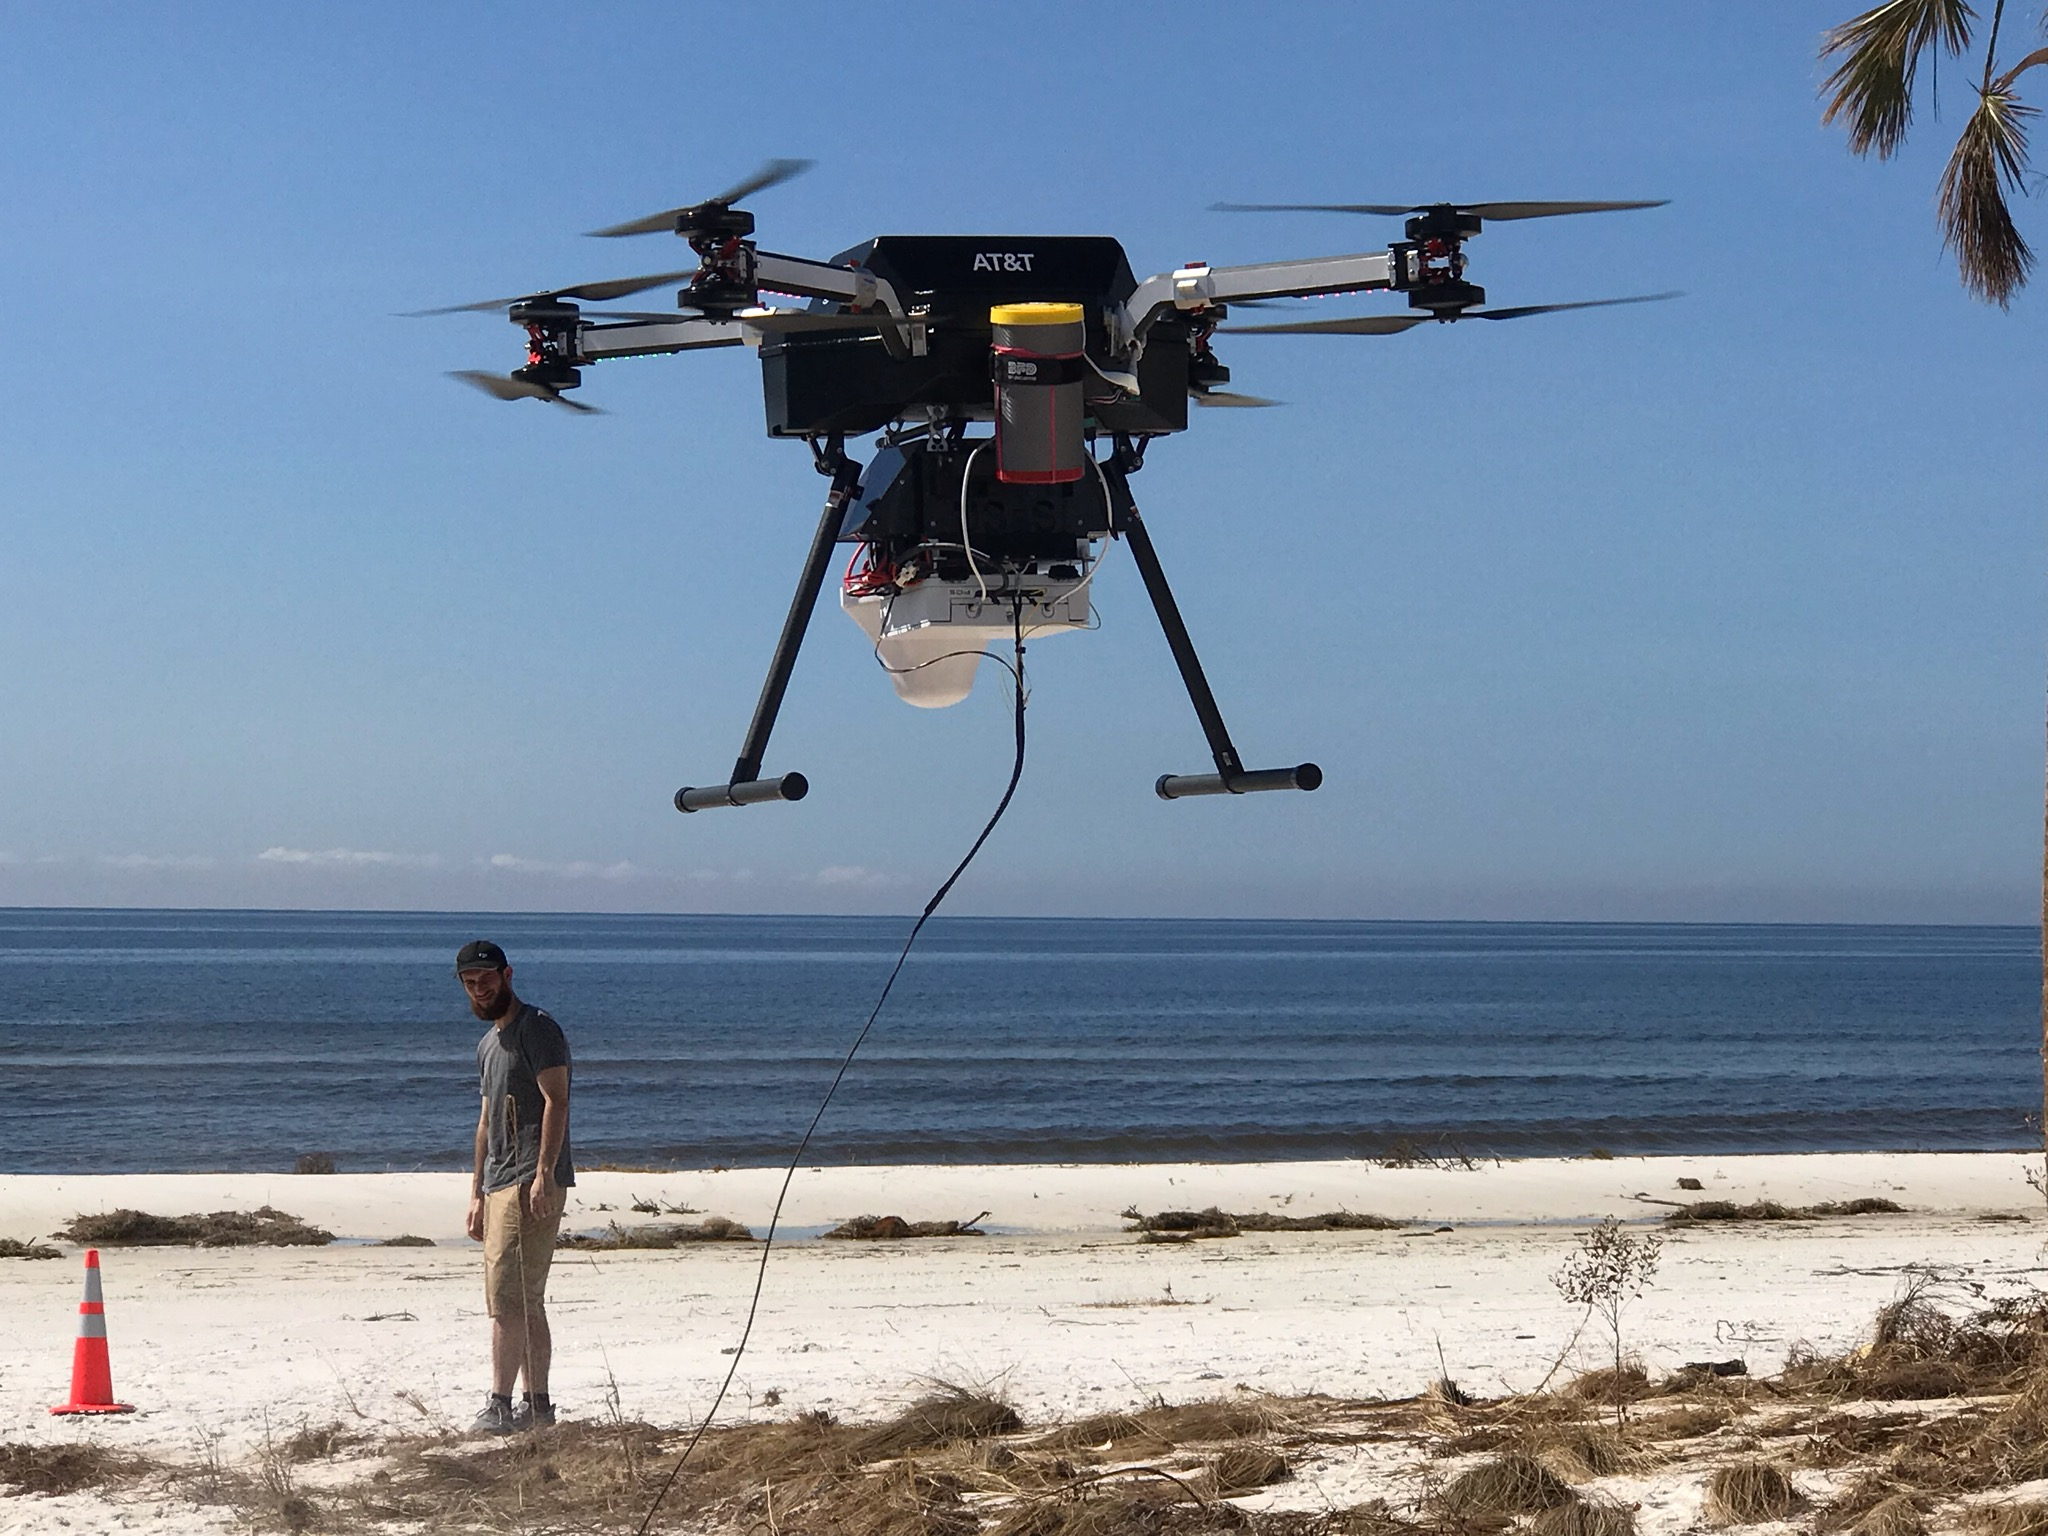 Flying Cow Brings Cell Service Back To Mexico Beach